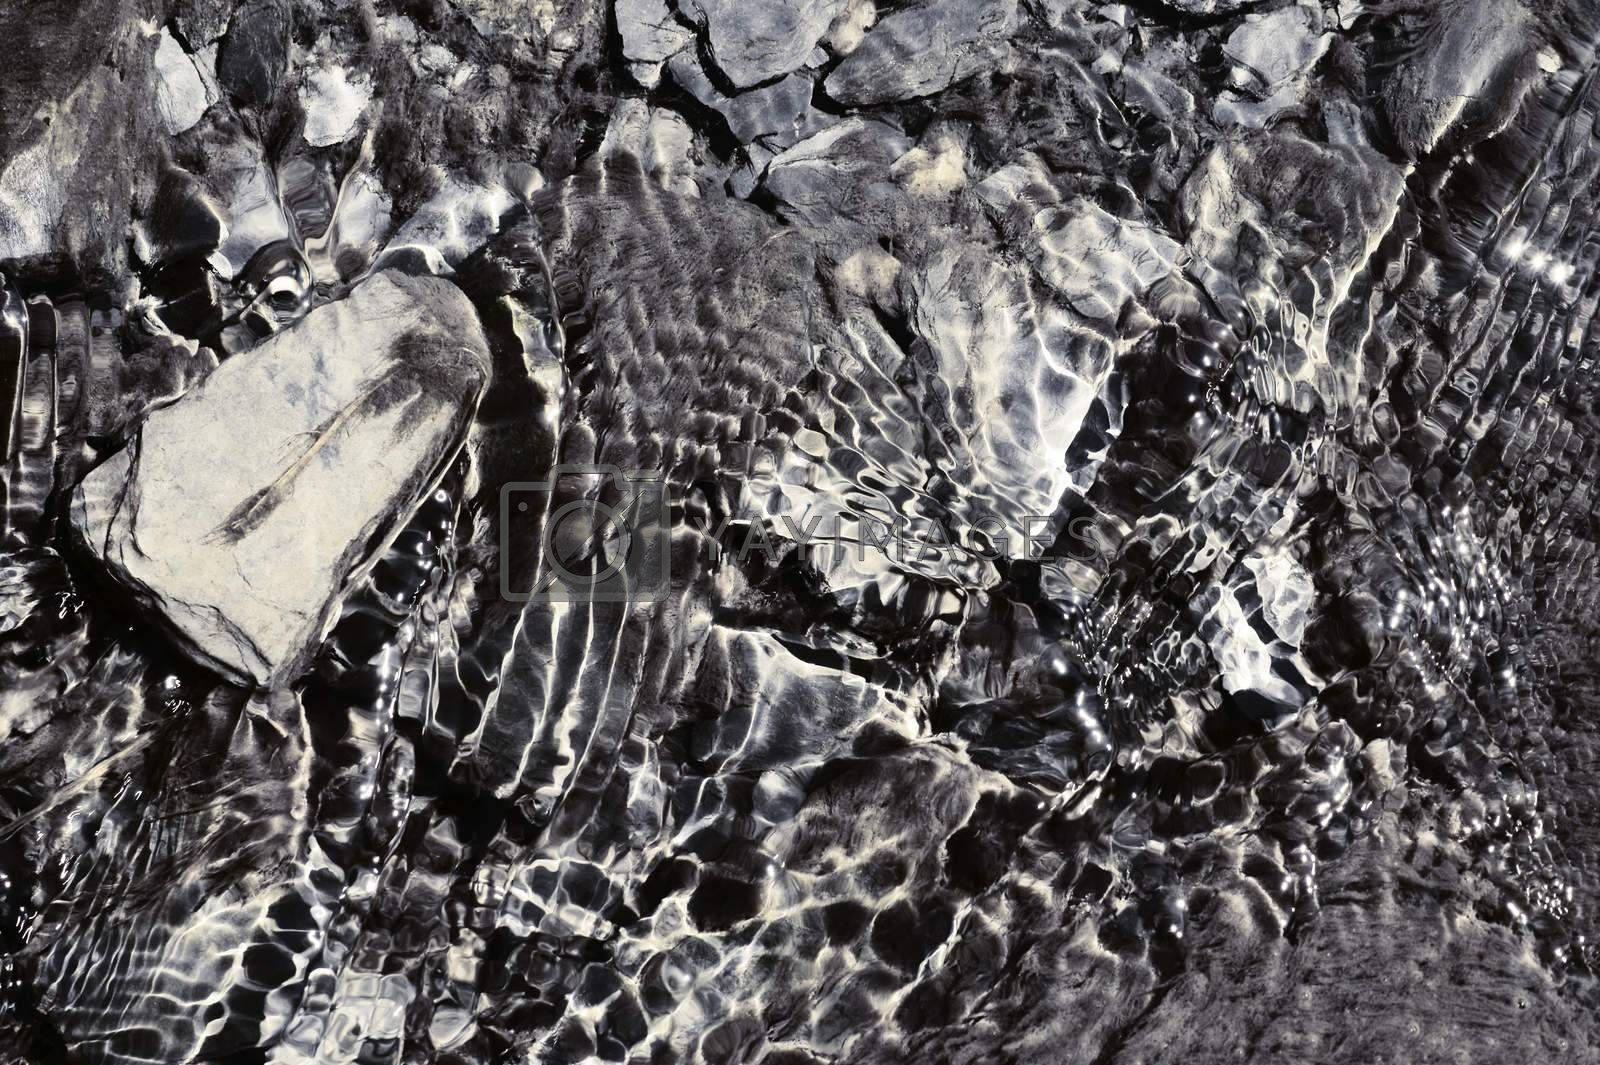 A stream with sediments, water plants and stones in clear sparkling water.